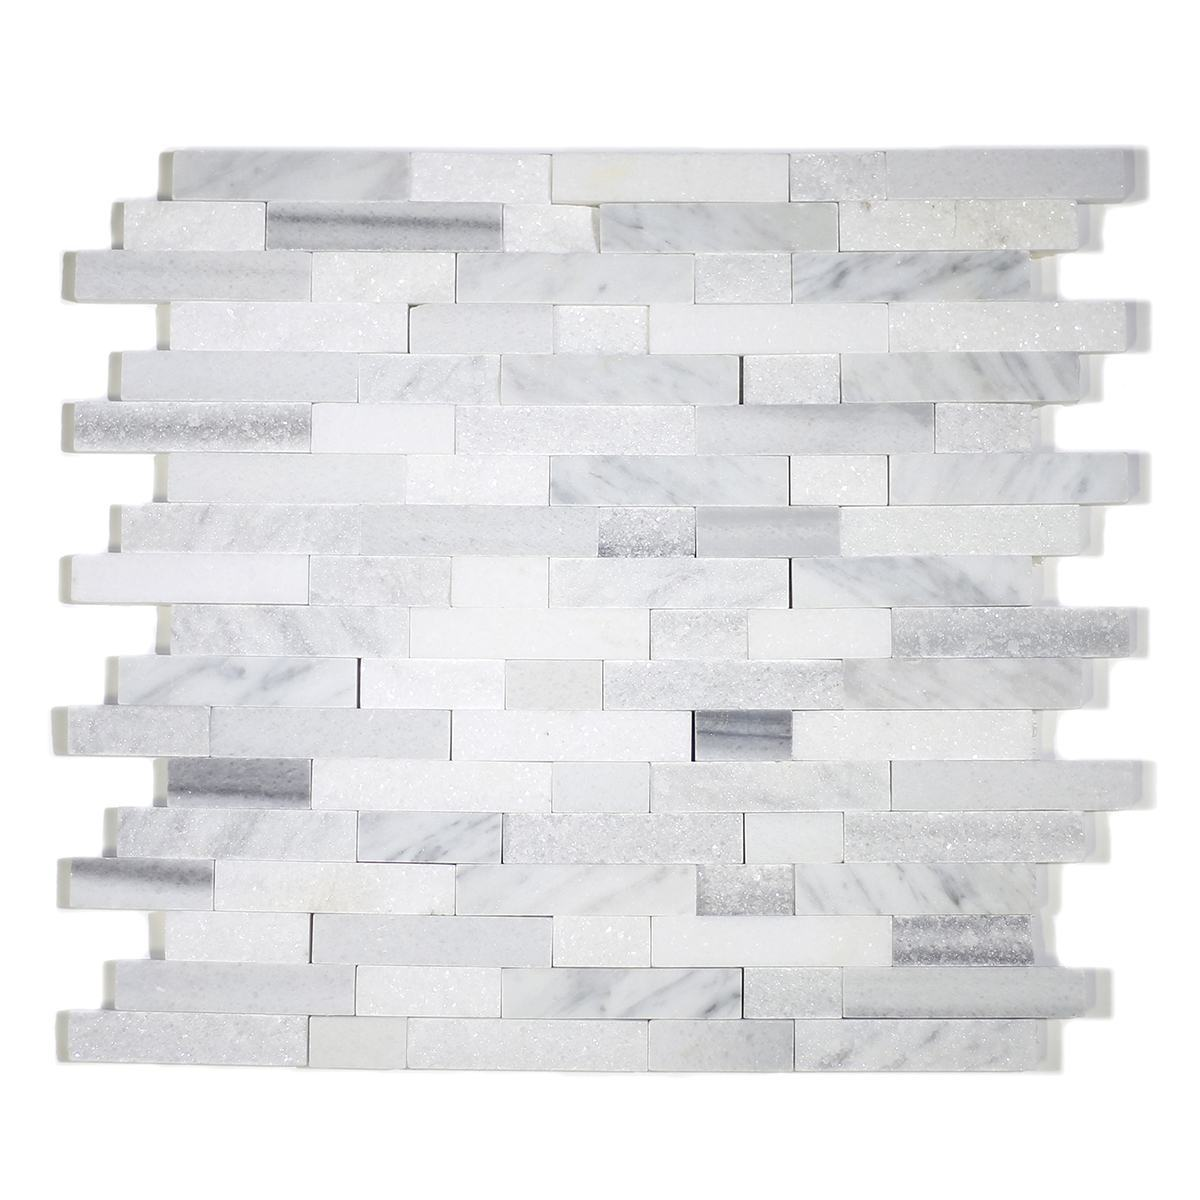 MA252-SP  5/8 Carrara, marwa, thasos Strips split face without space polished & matt mixed